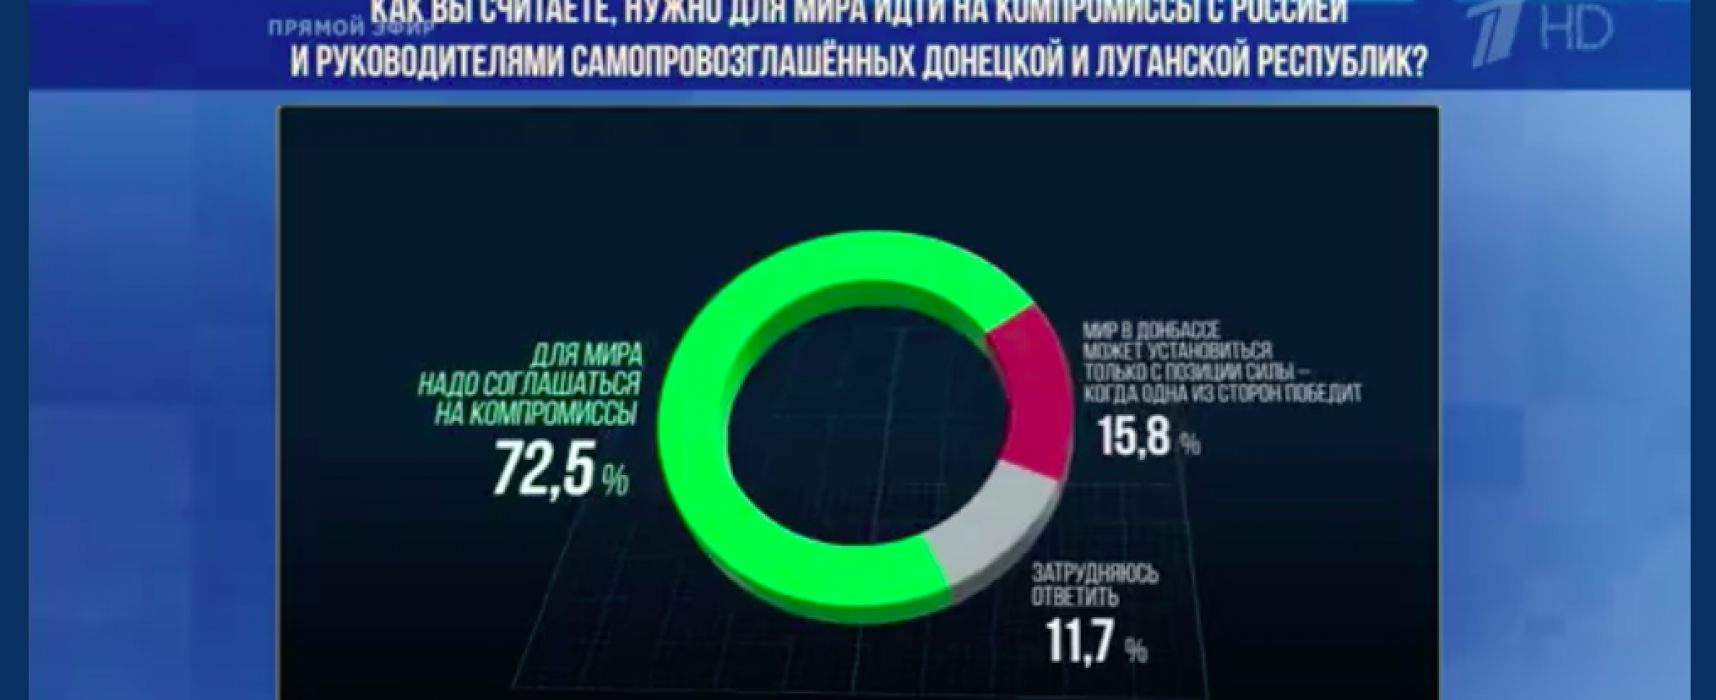 Fake: Over 70% of Ukrainians Ready to Compromise with Russia for Peace in Eastern Ukraine